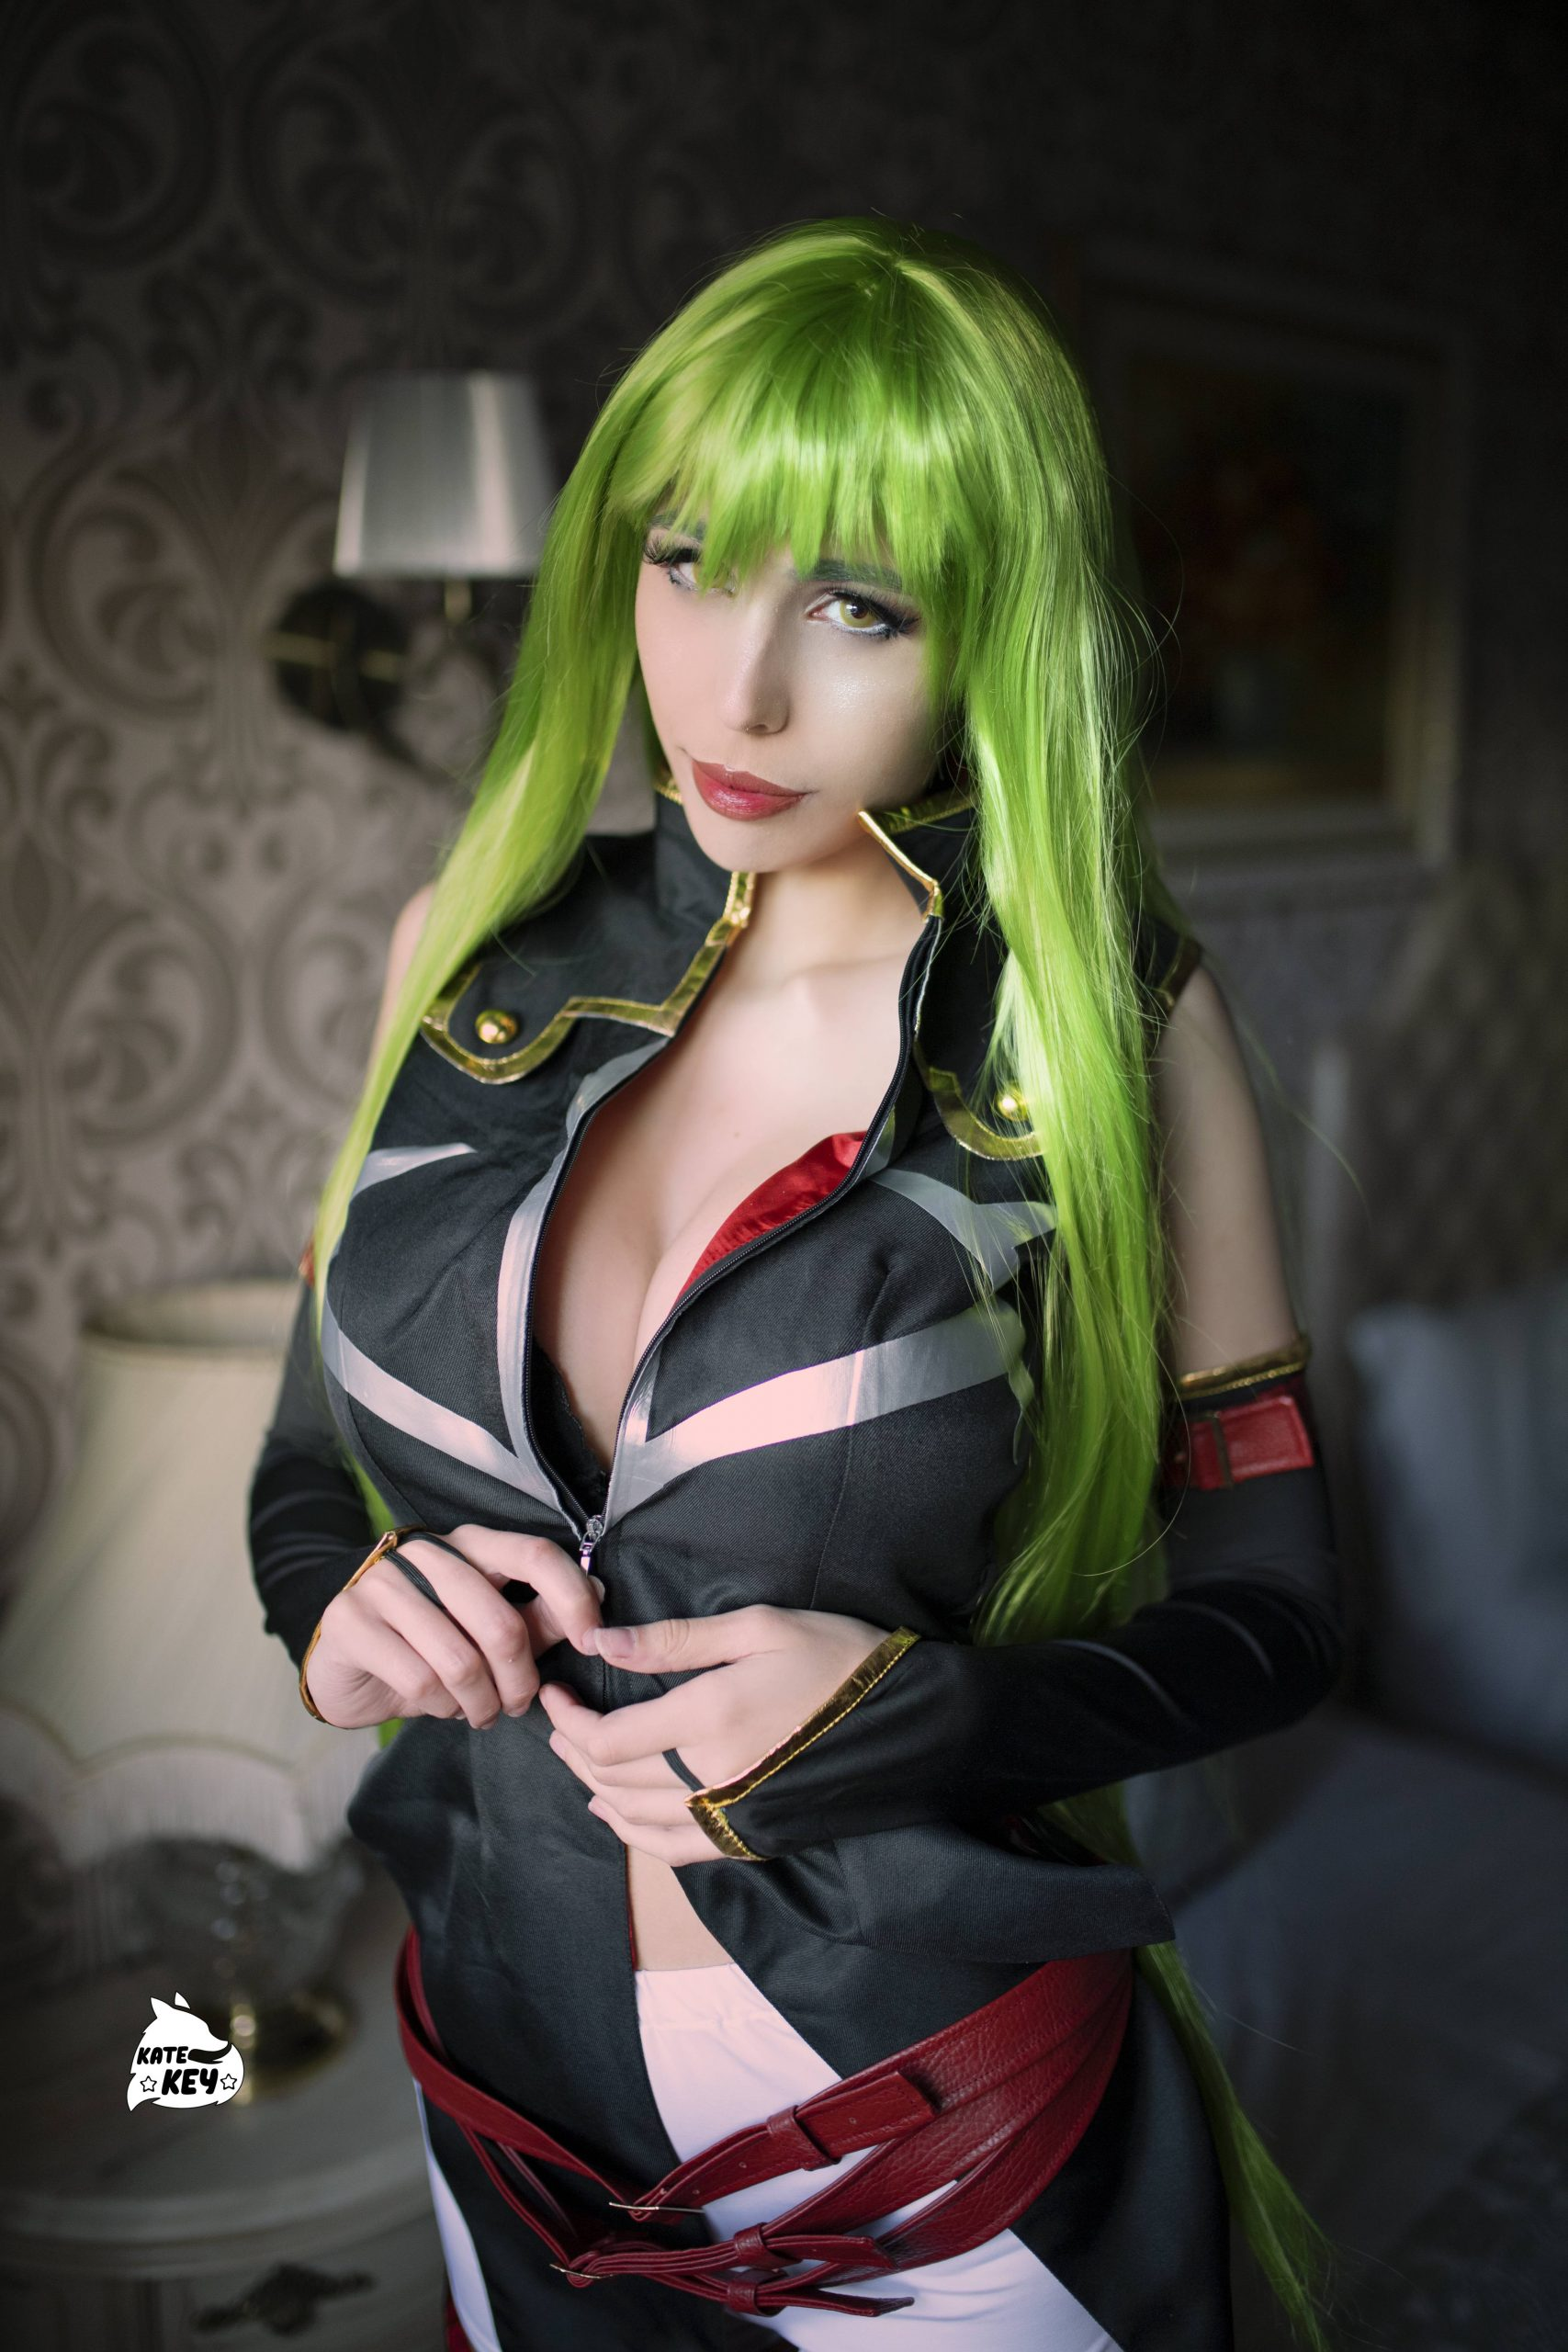 CC From Code Geass By Kate Key